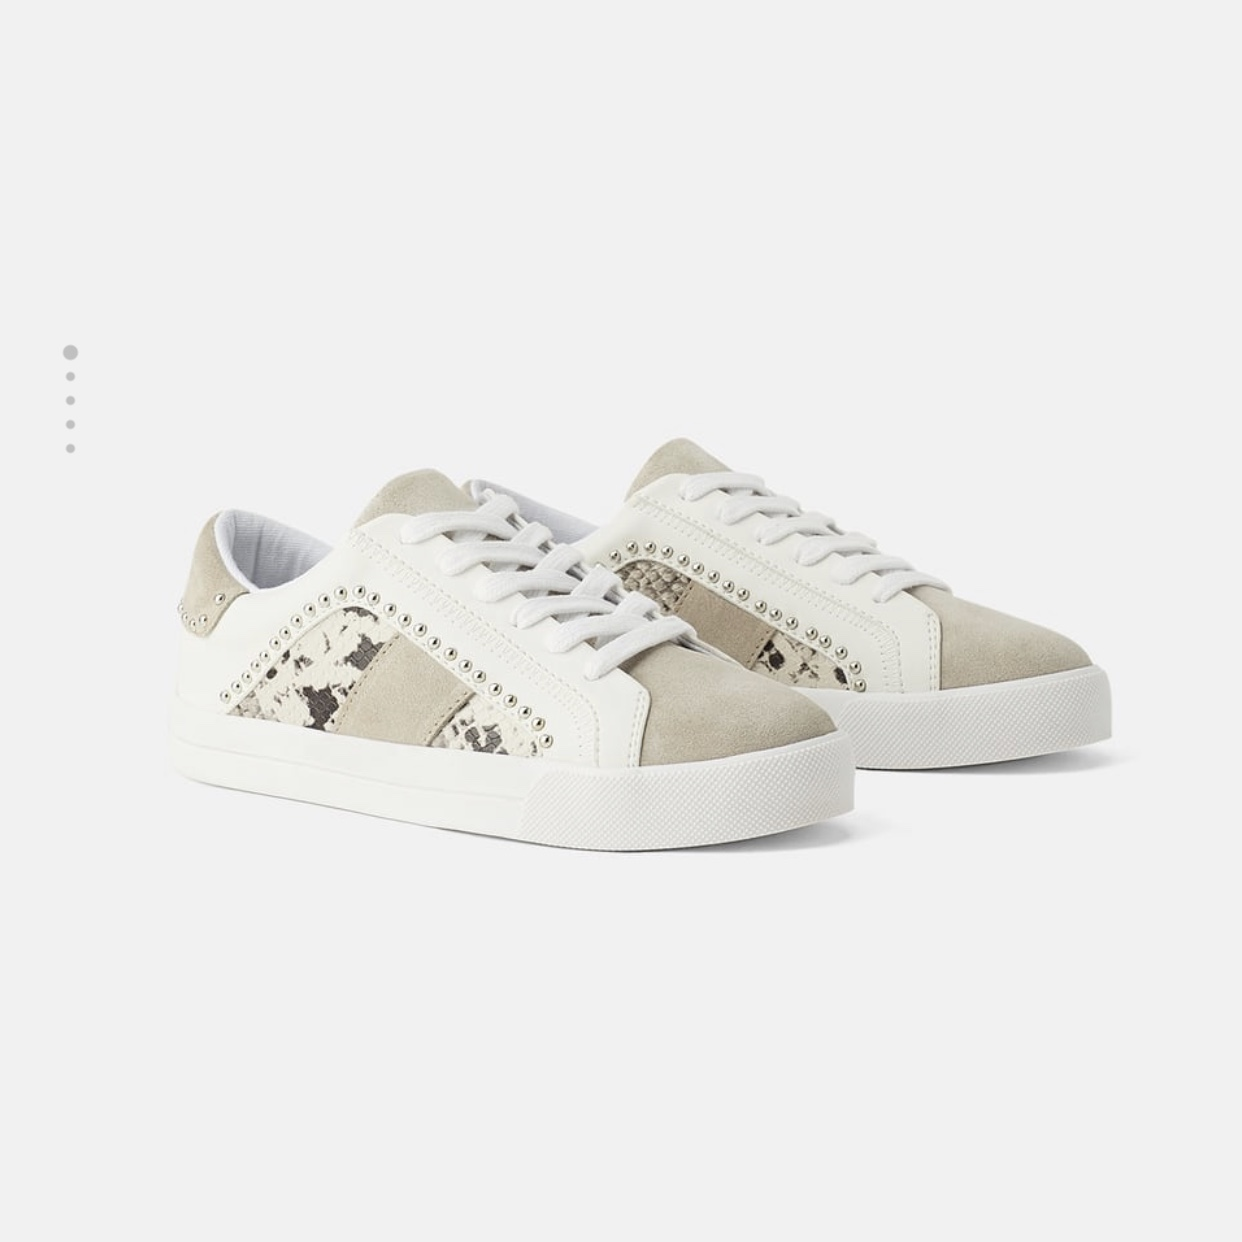 Zara White studded trainers with suede